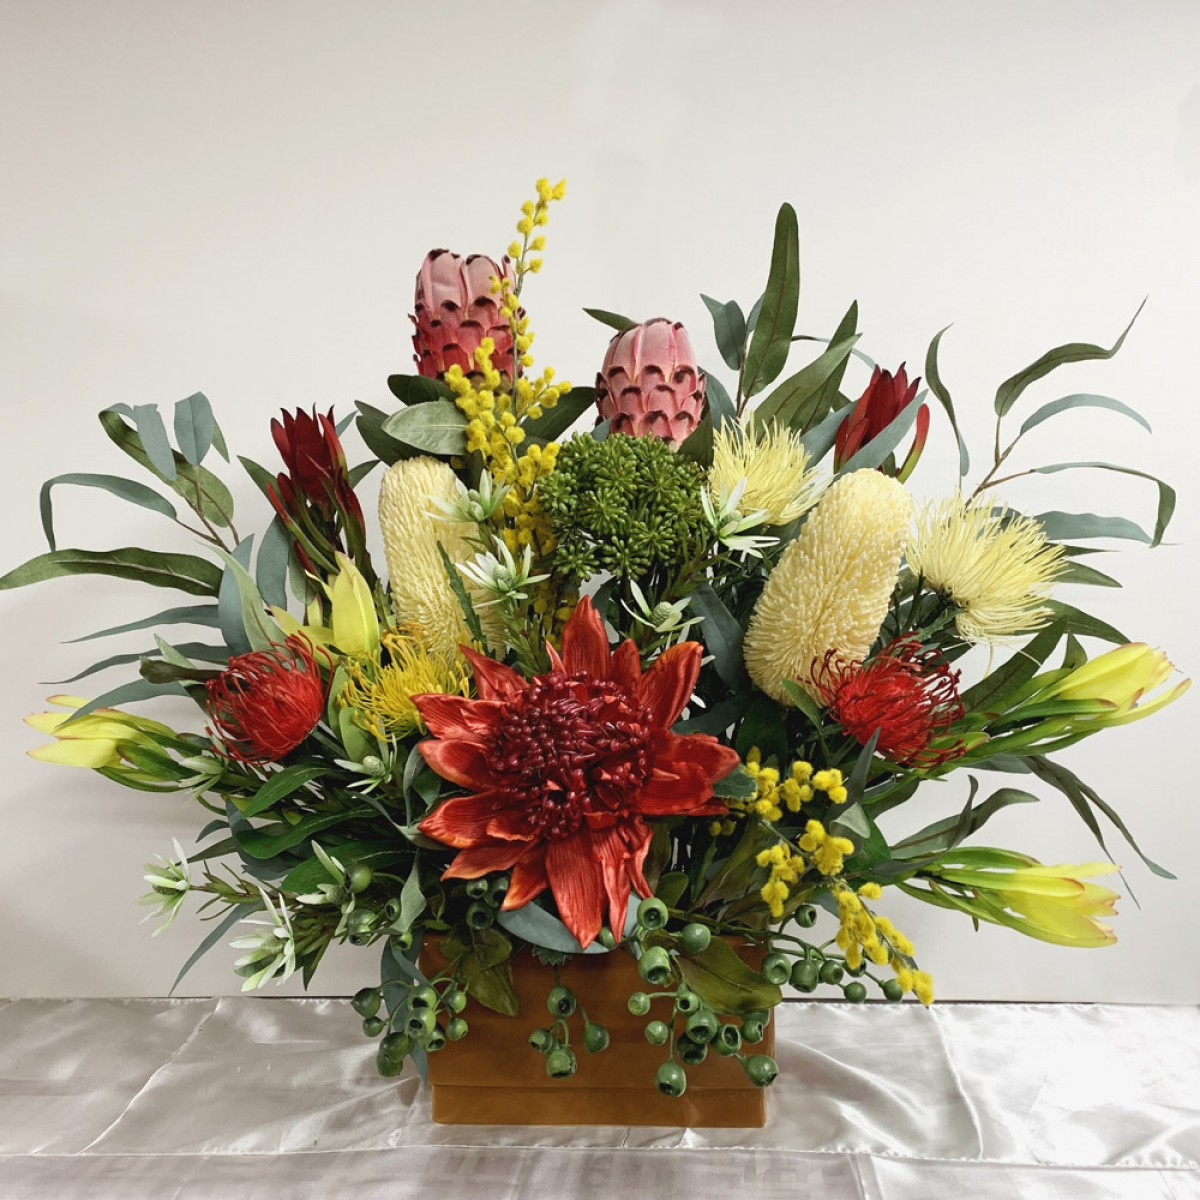 Cheap Wedding Flowers Sydney: Artificial Trees And Flowers